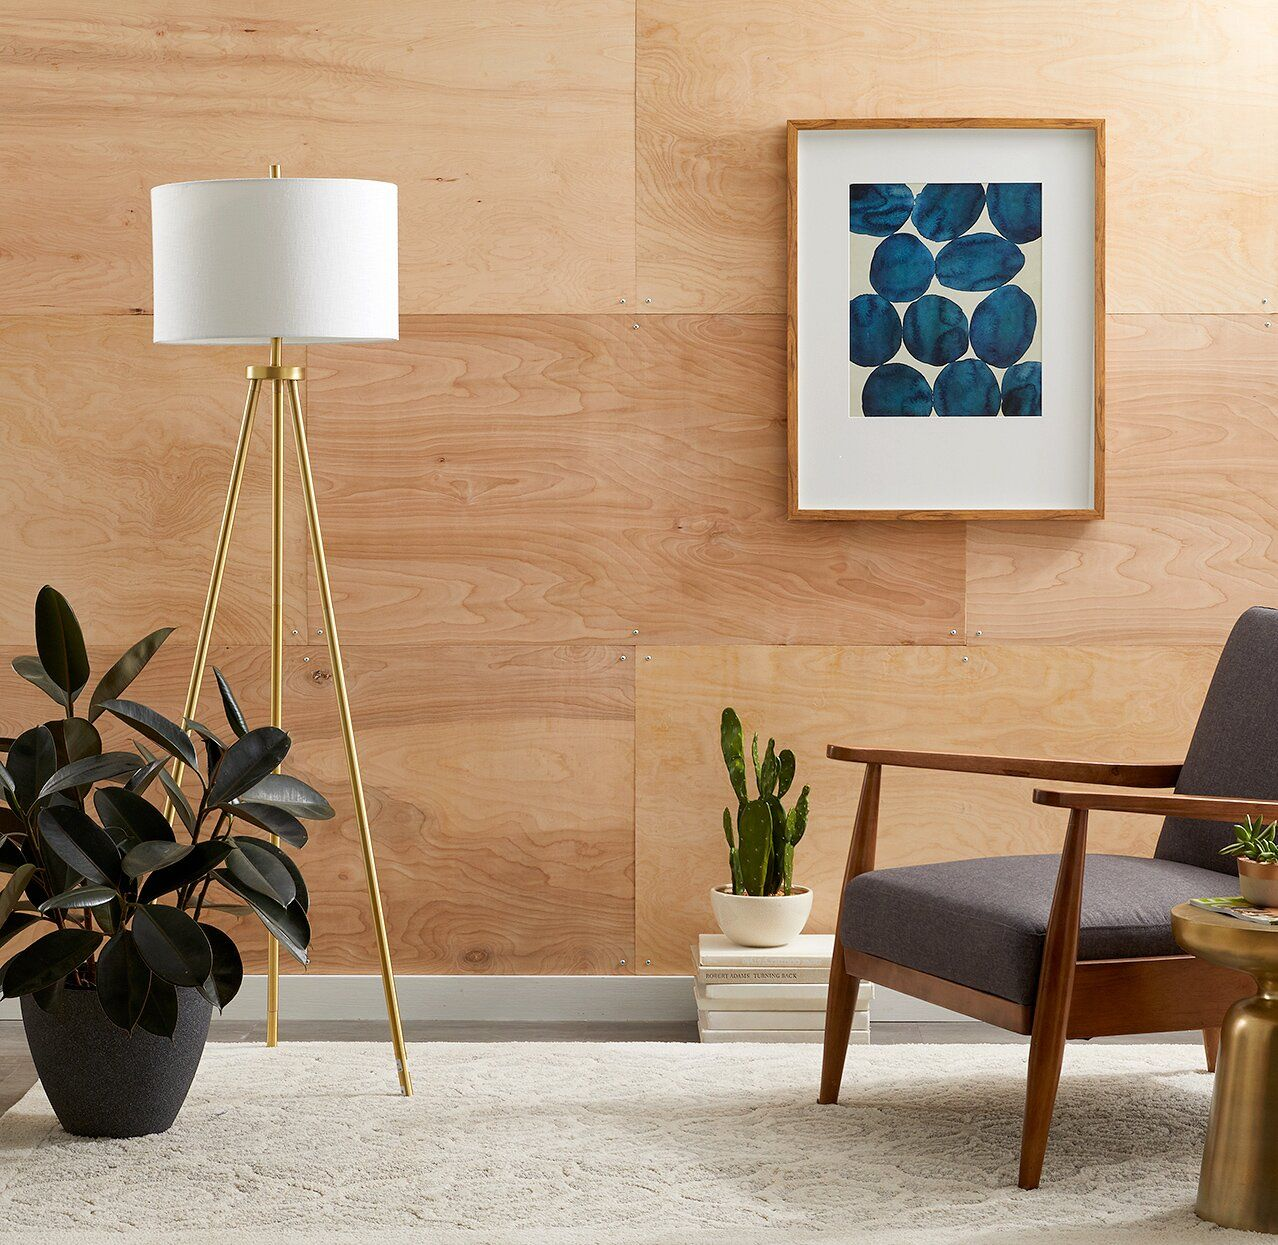 This Plywood Accent Wall Is SO Easy to Make